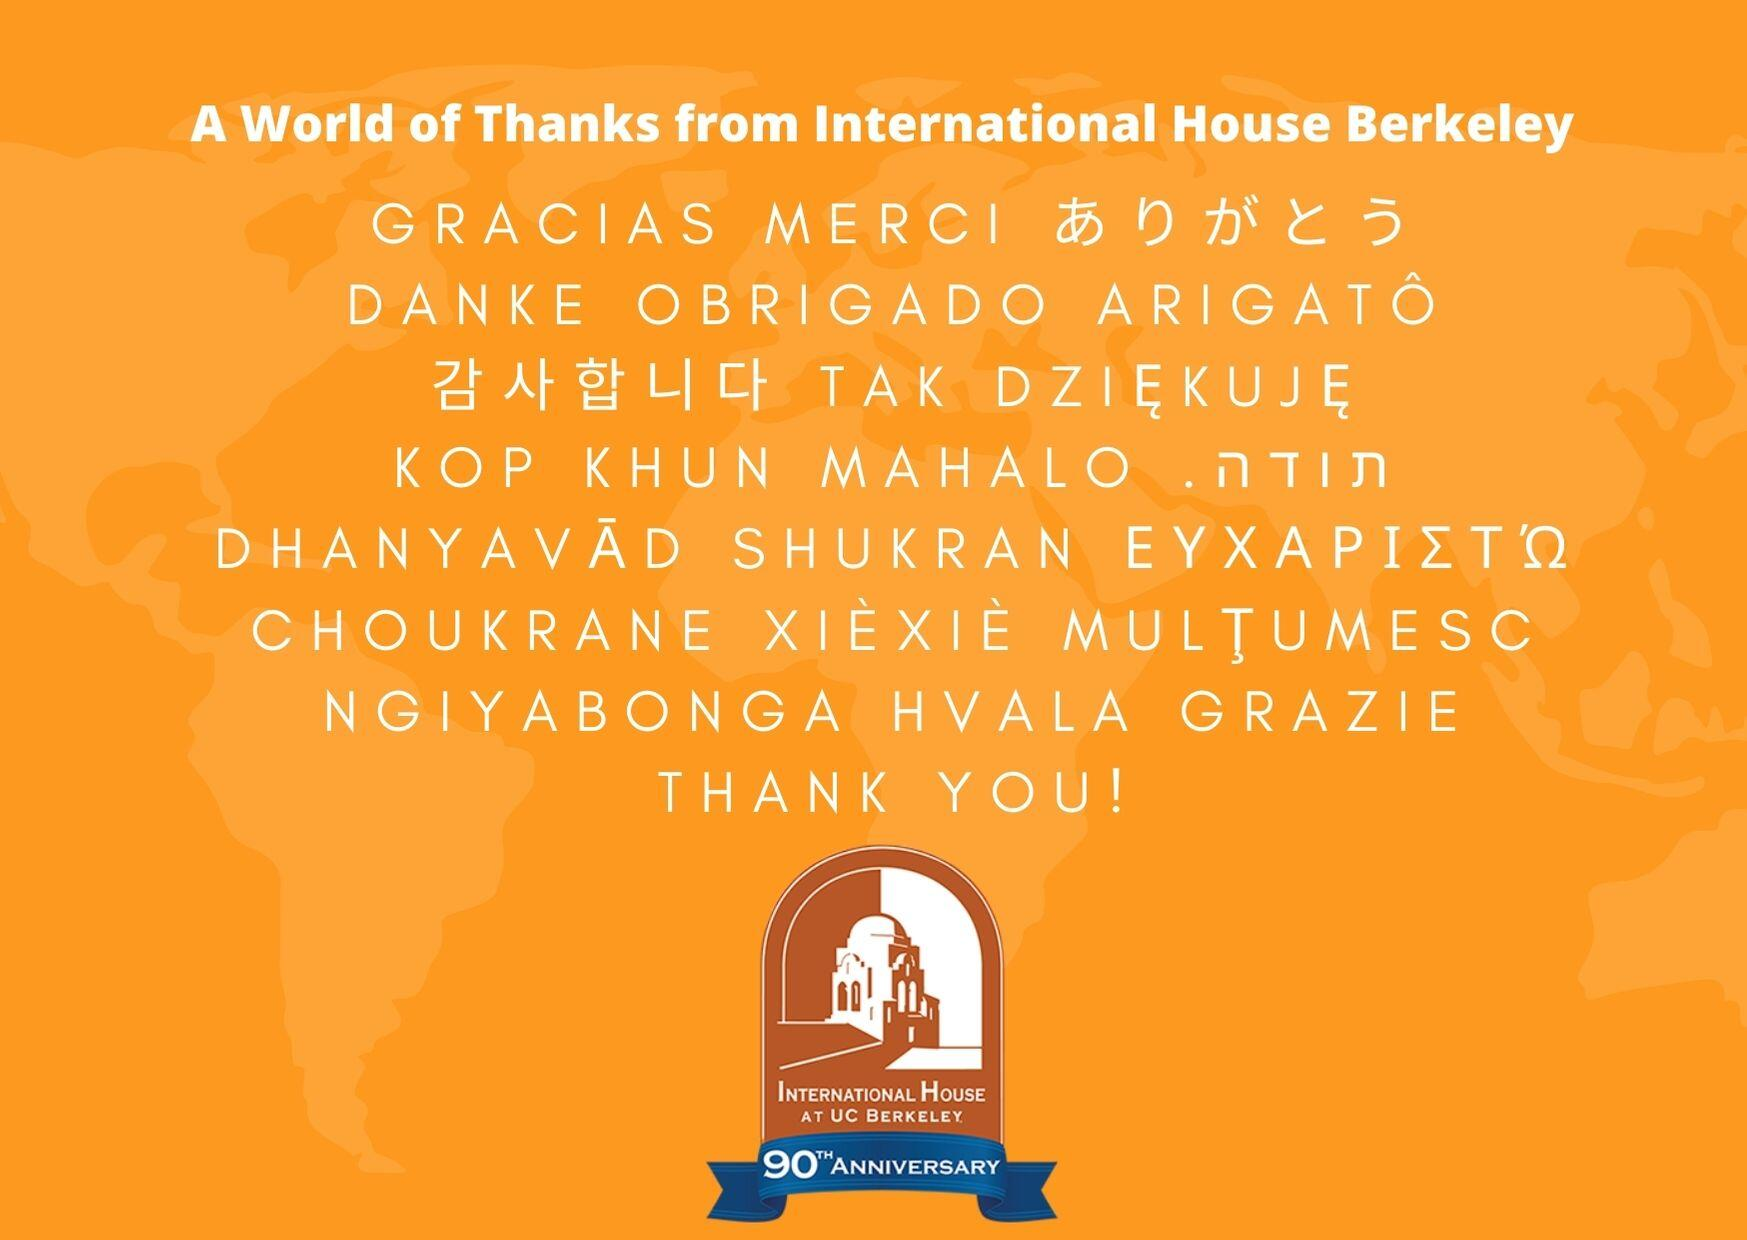 A world of thanks from International House